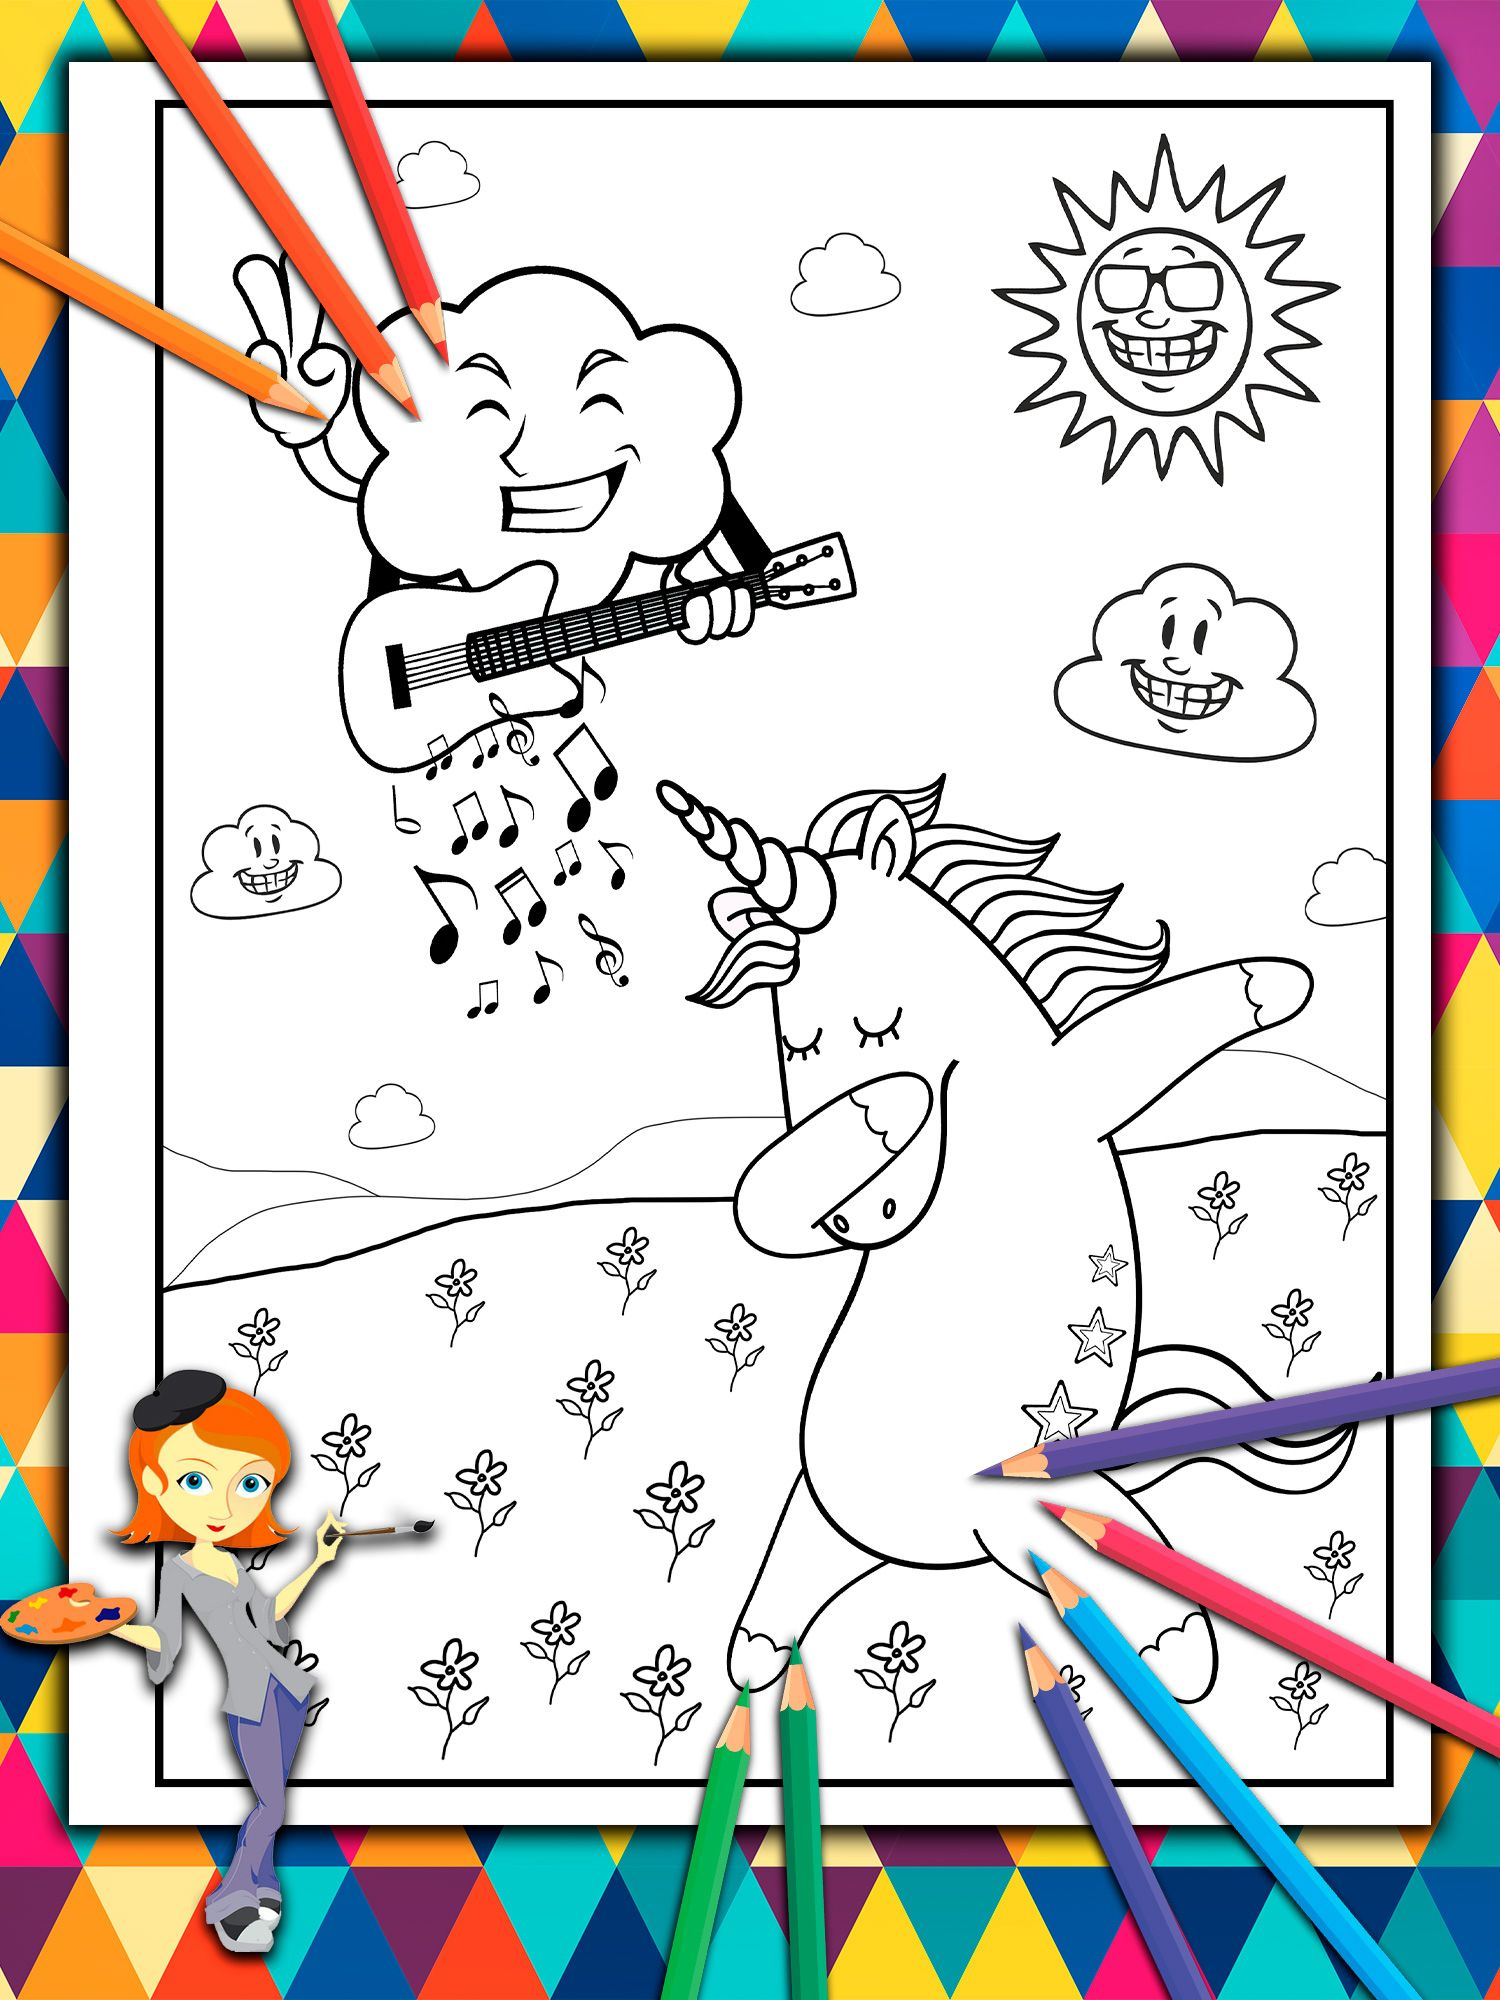 Music For The Happy Unicorn Unicorn Coloring Book For Kids By Katrin Brown Image 1 Coloring Books Dance Coloring Pages Book Art